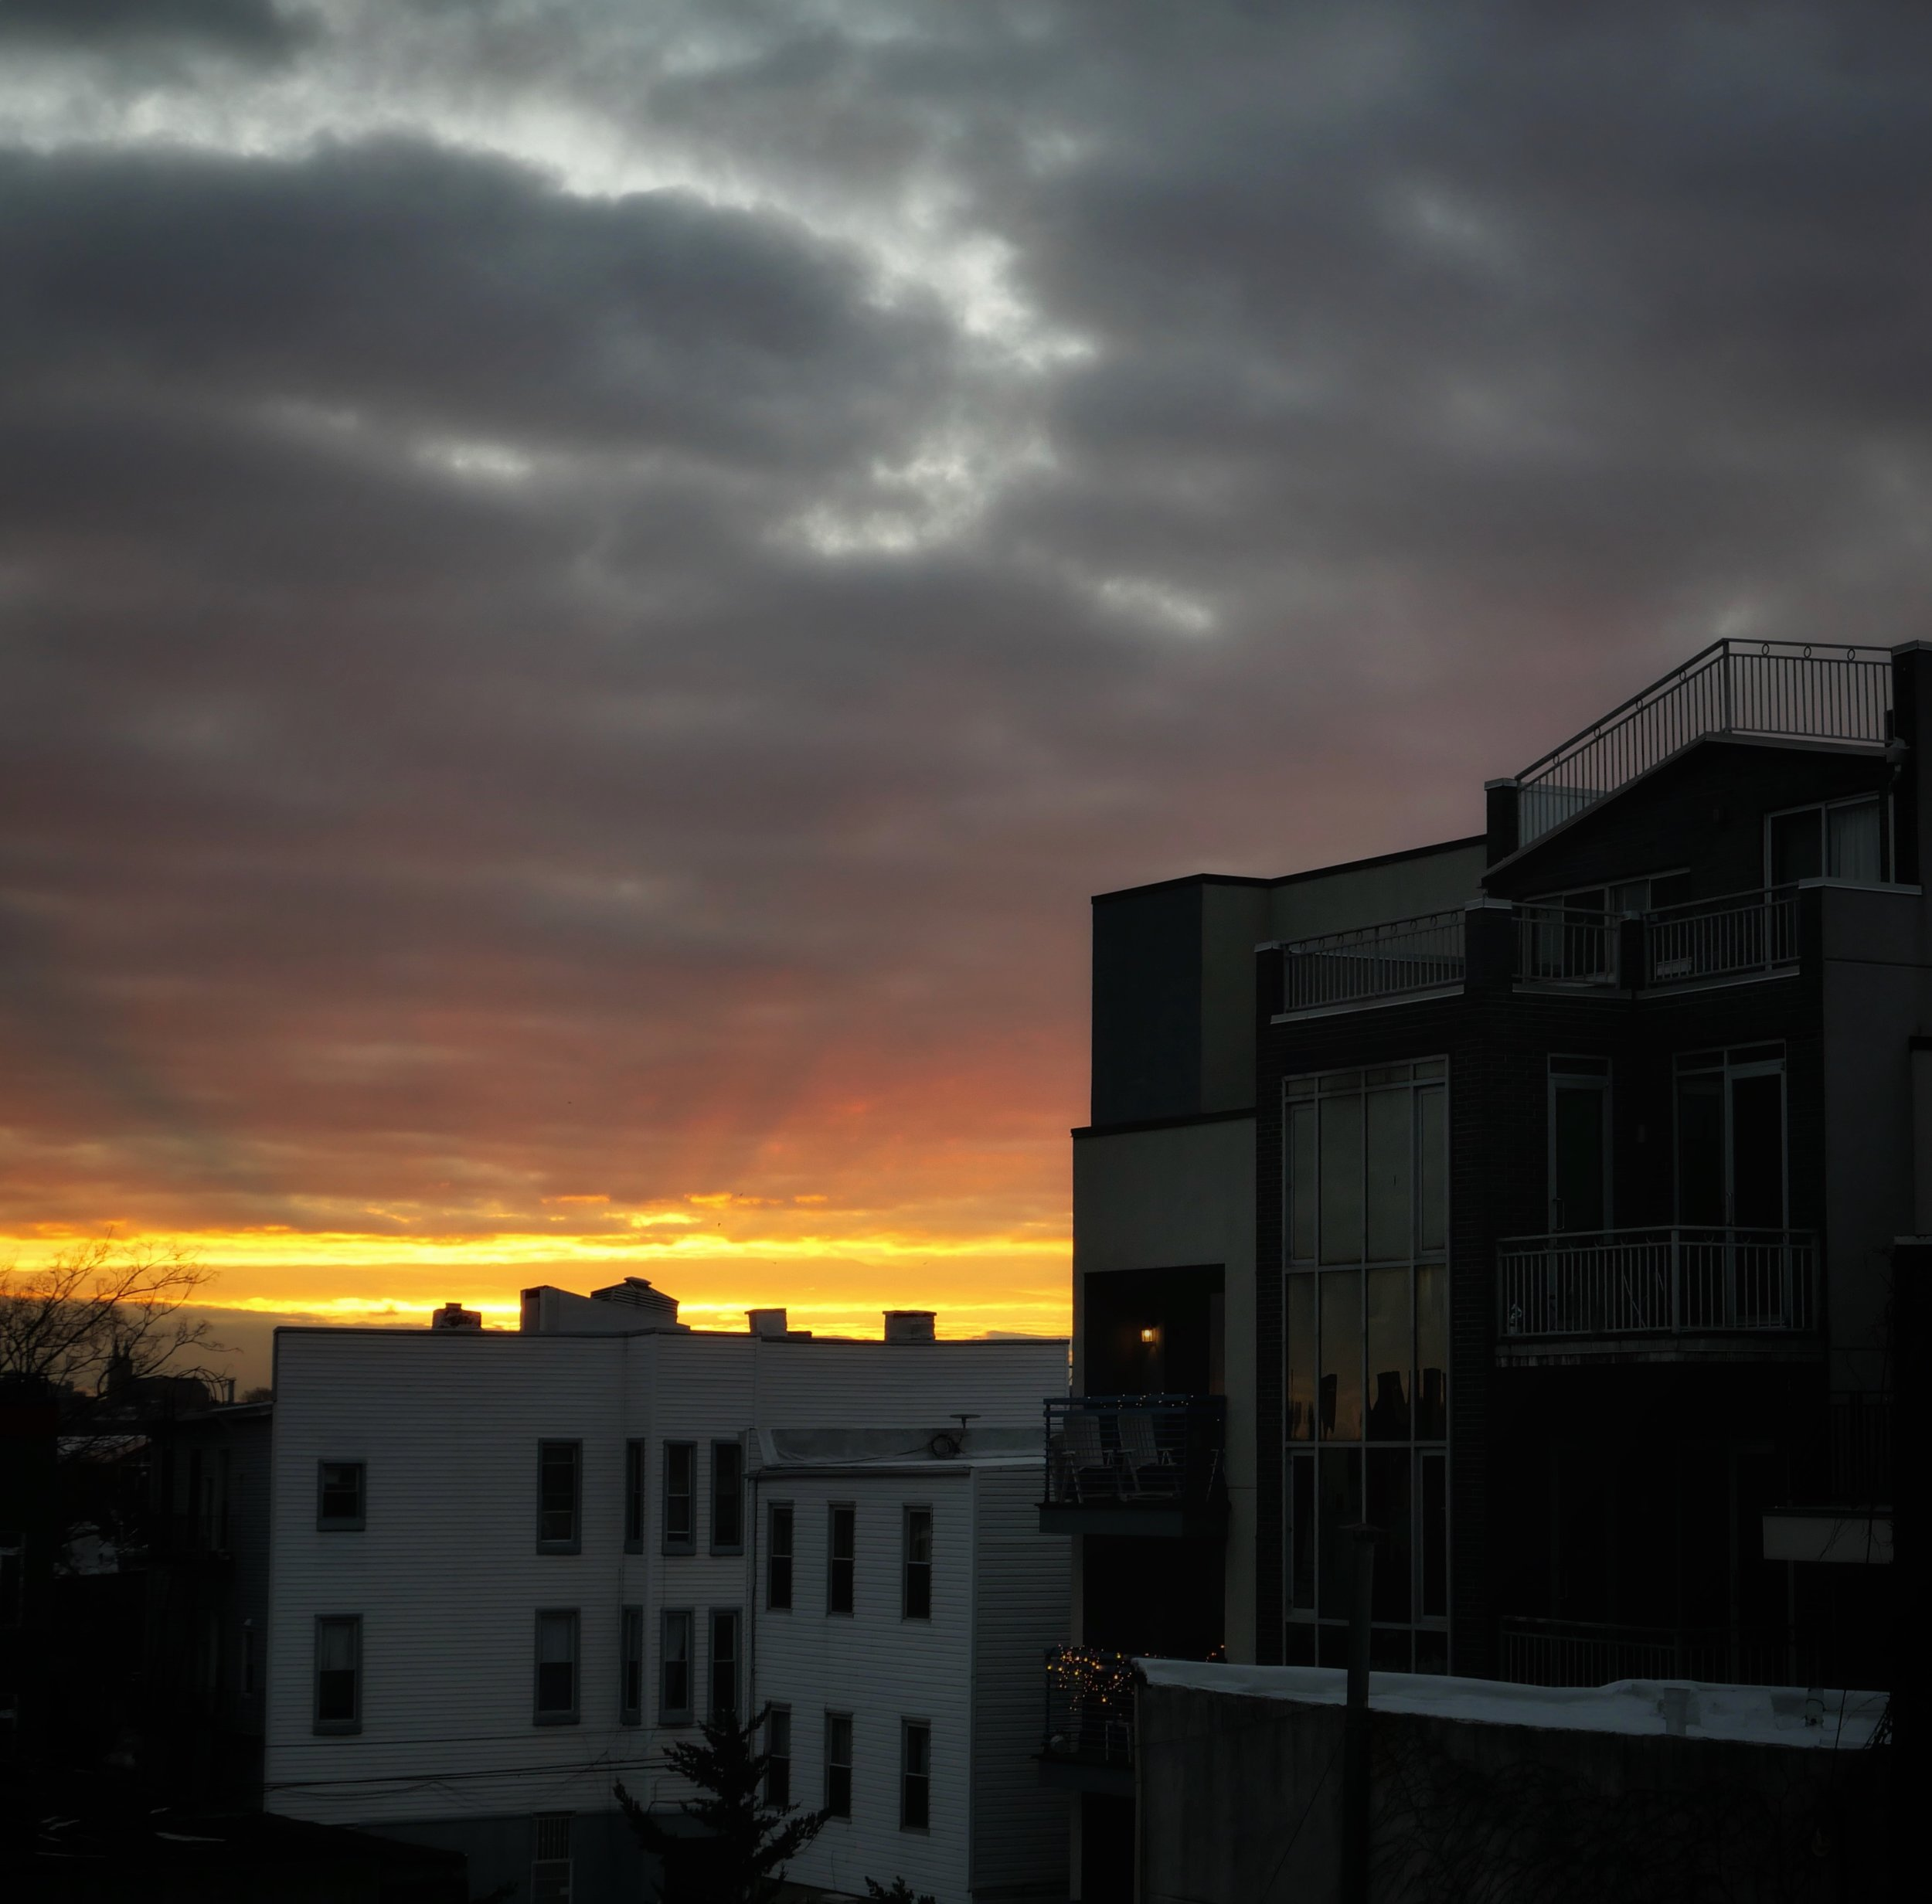 morning meditation: east williamsburg sunrise